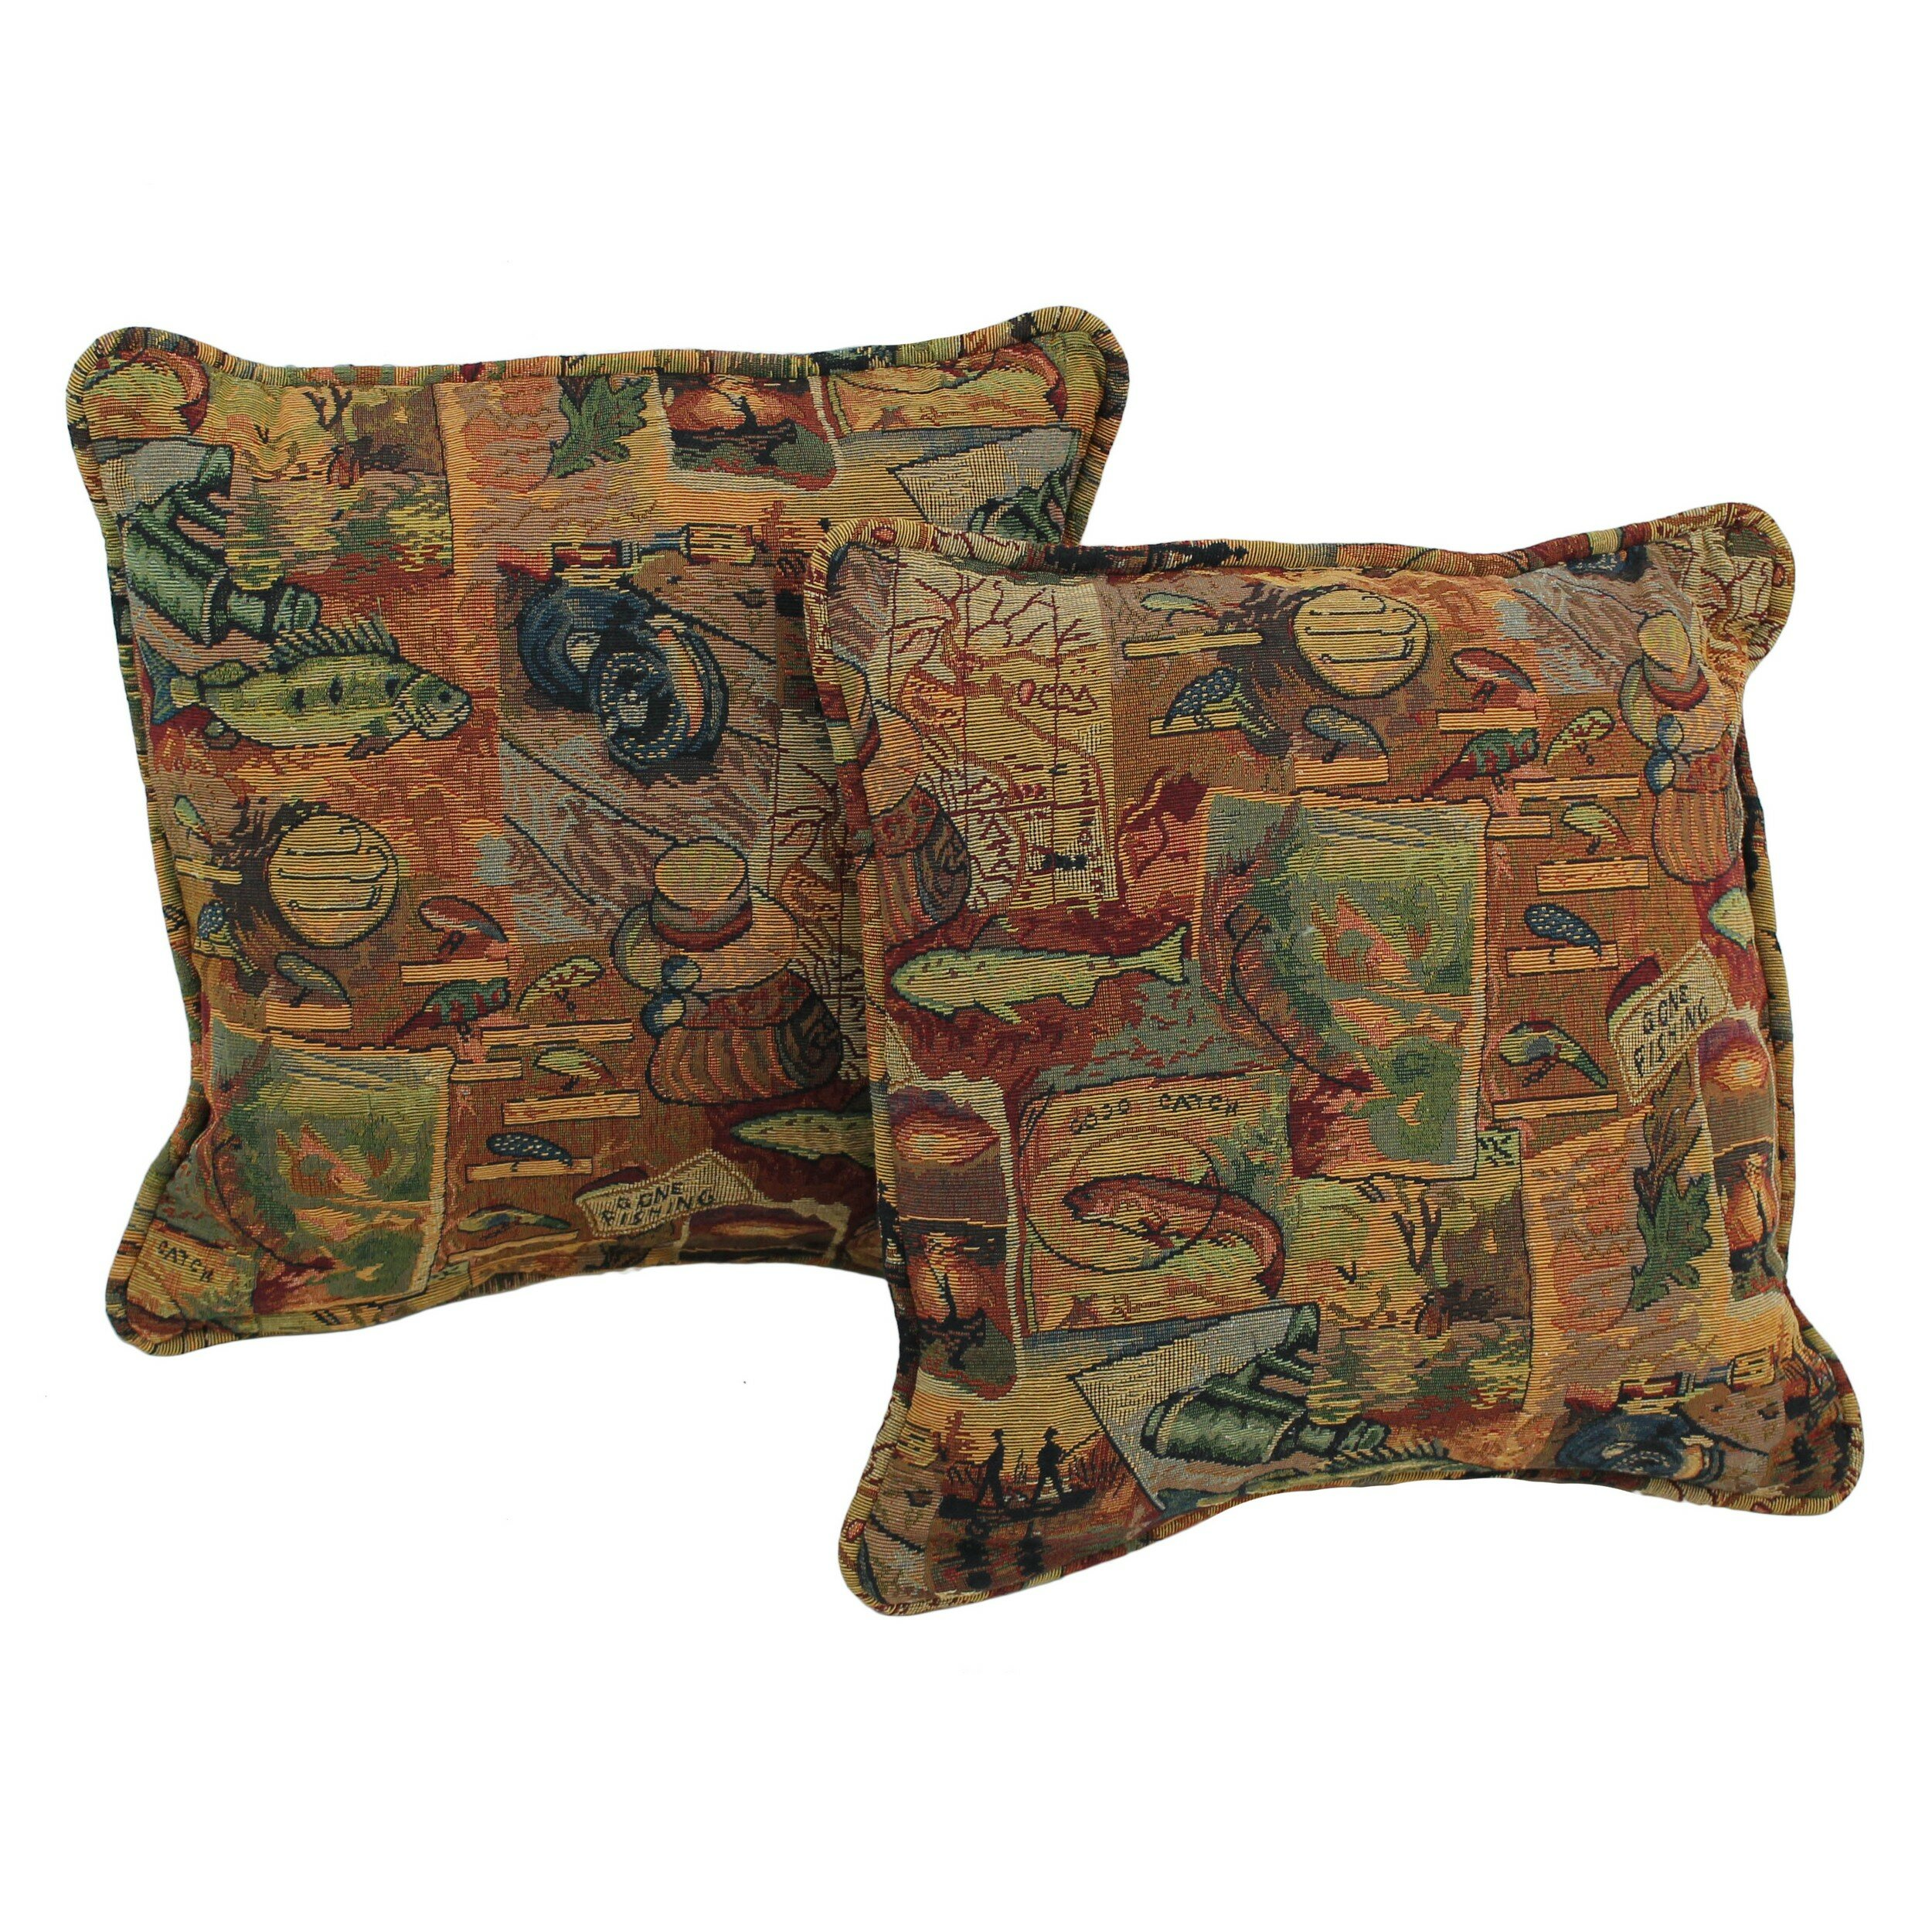 Decorative Western Throw Pillows : Blazing Needles Western Tapestry Throw Pillow & Reviews Wayfair